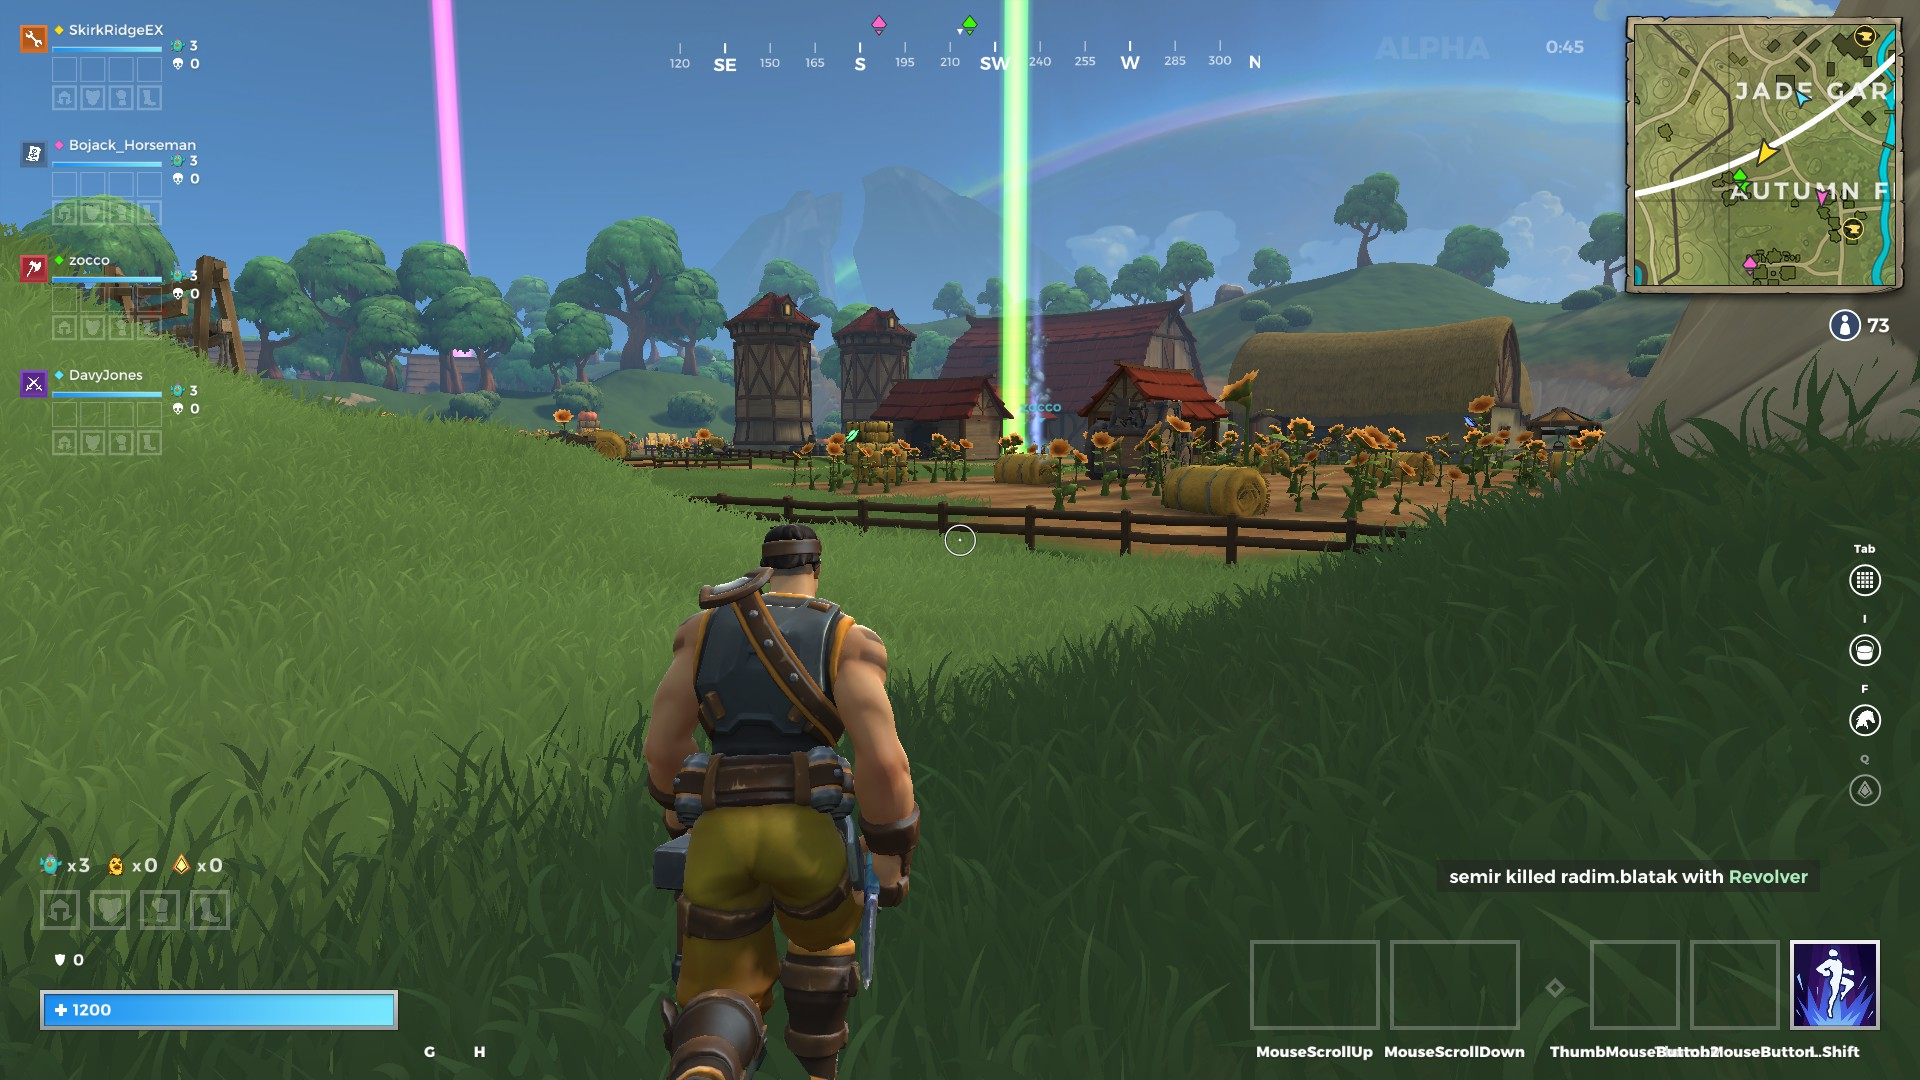 A view of the Autumn Fields in Realm Royale